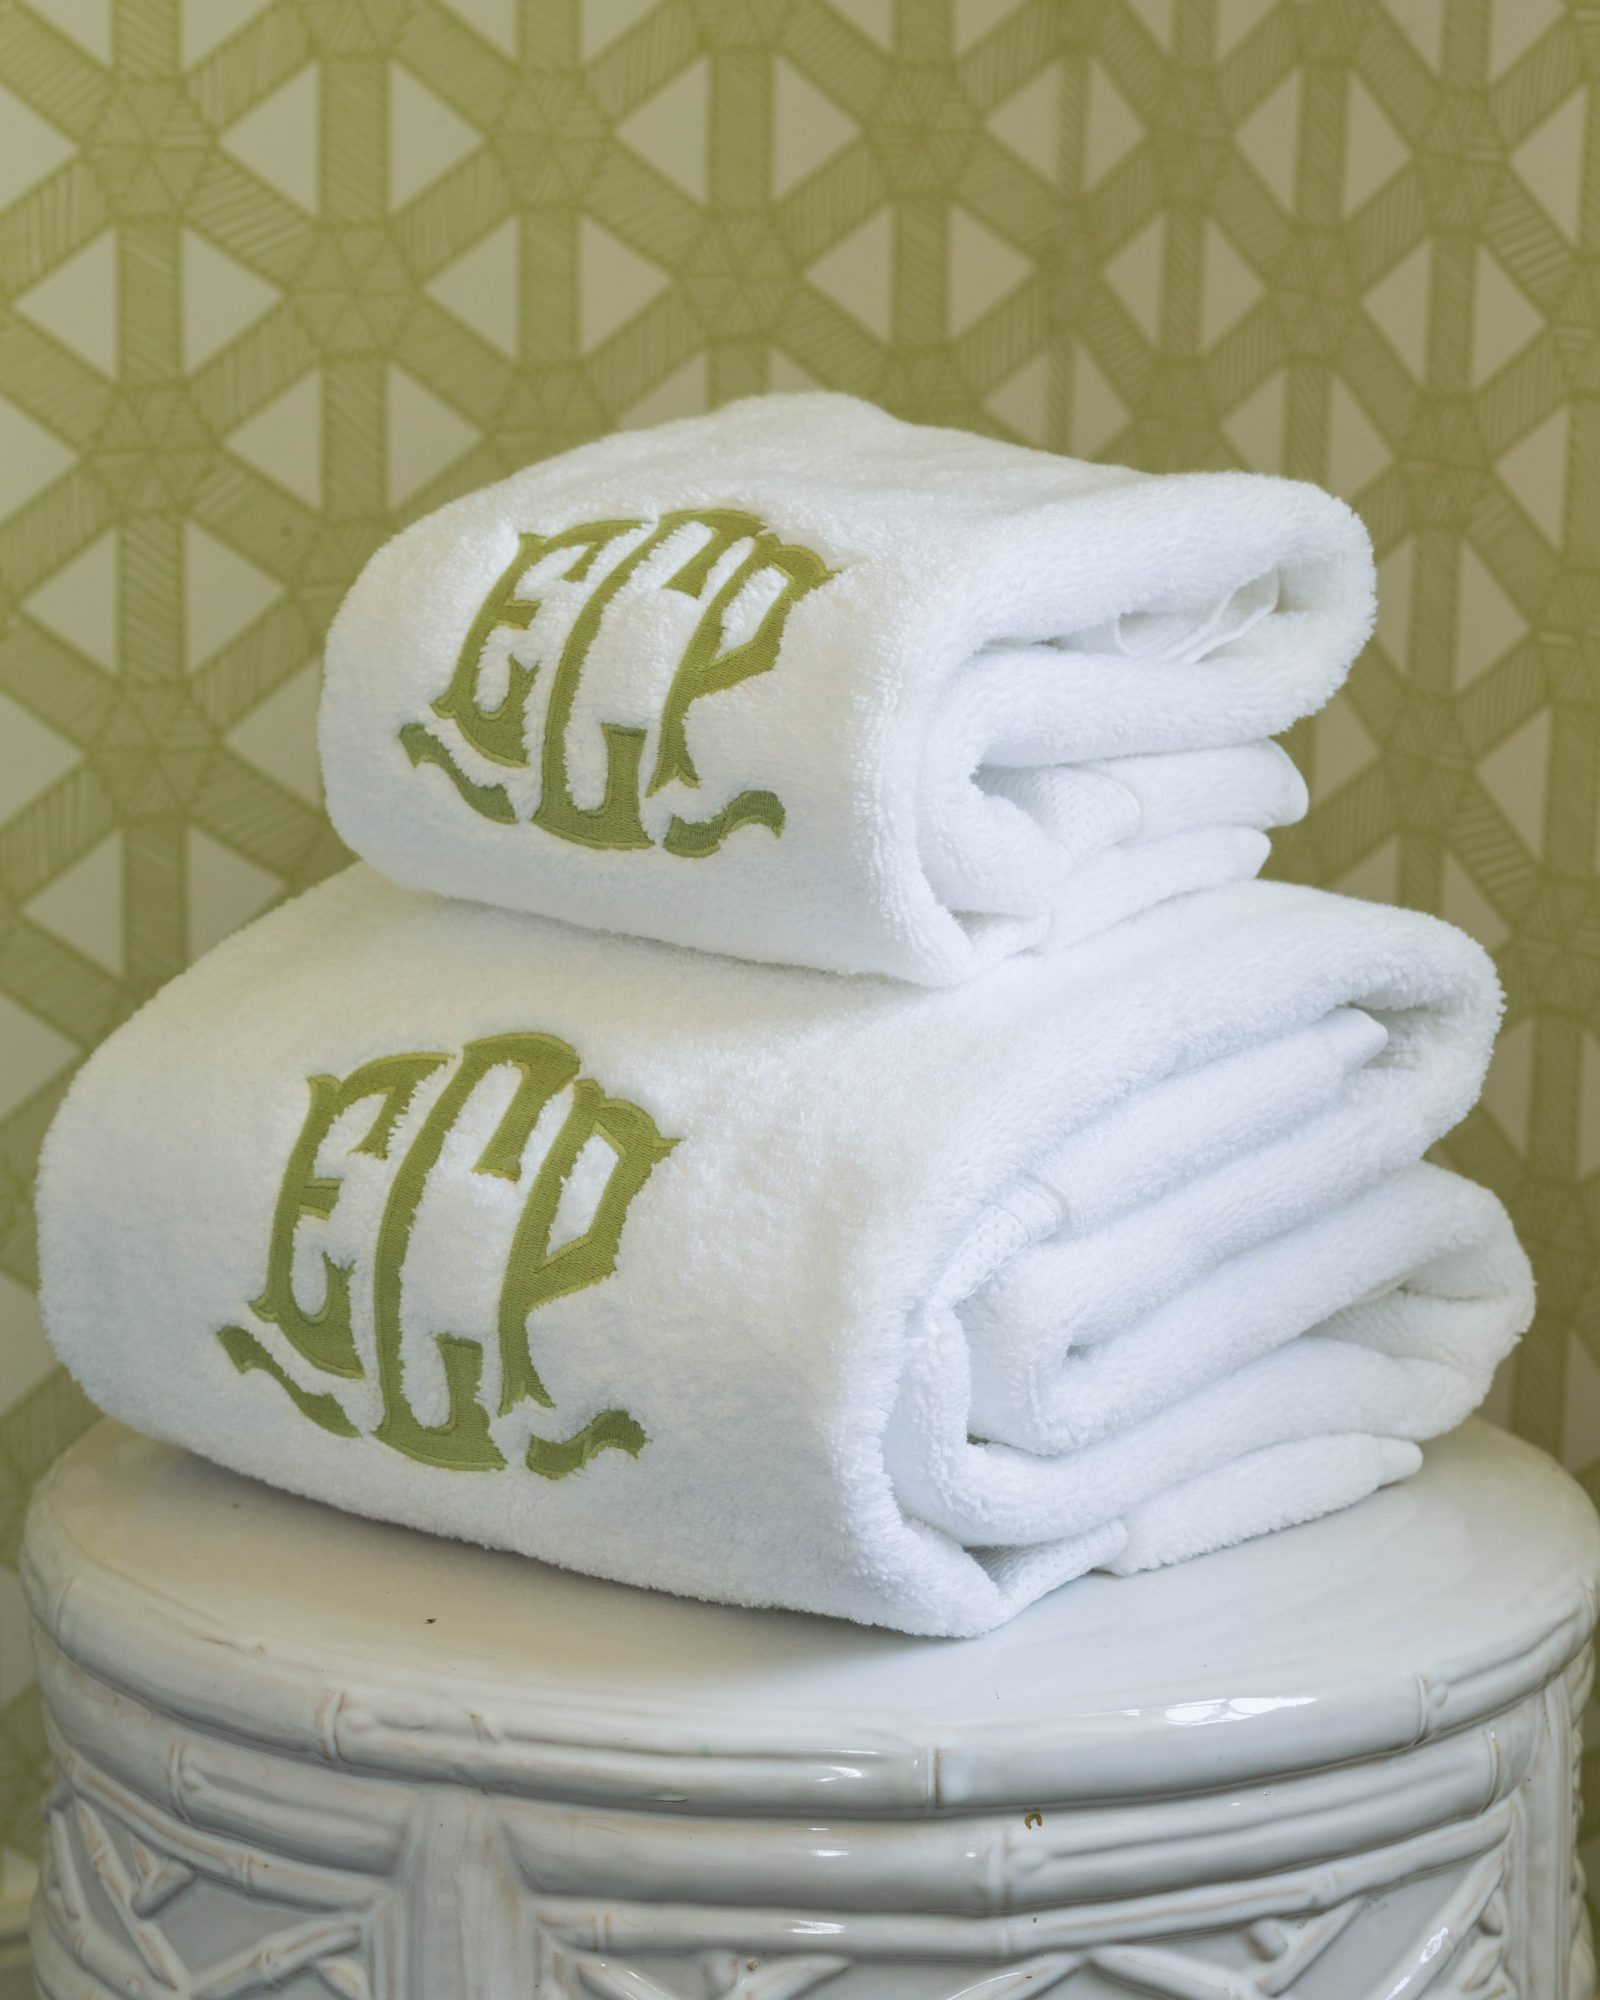 2016 Idea House Dillards Towels